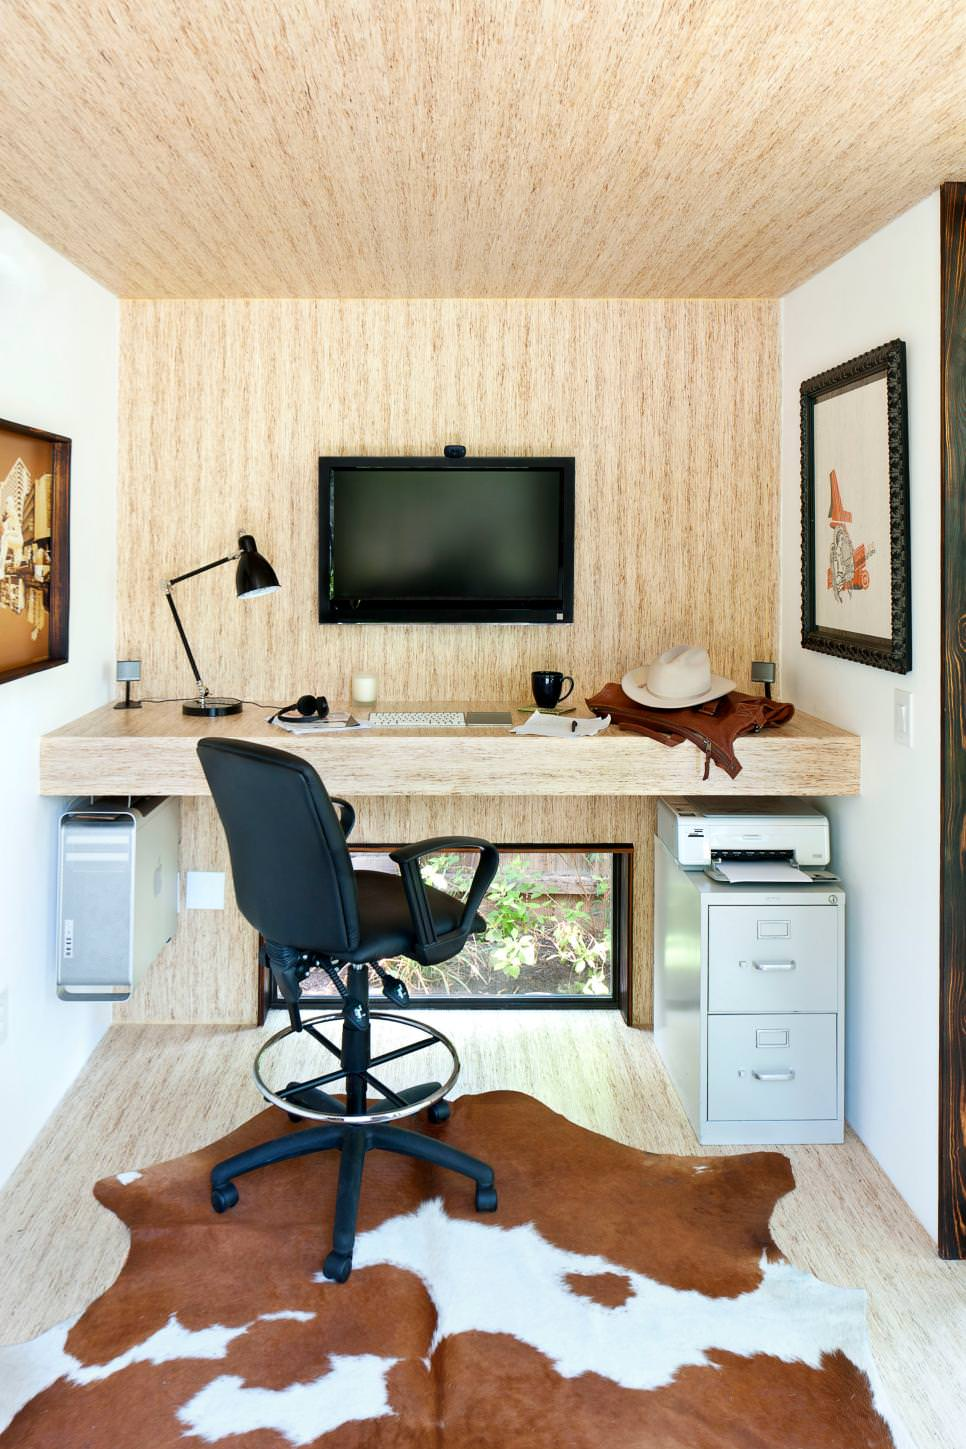 Home Office Room Design: 23+ Attic Home Office Designs, Decorating Ideas